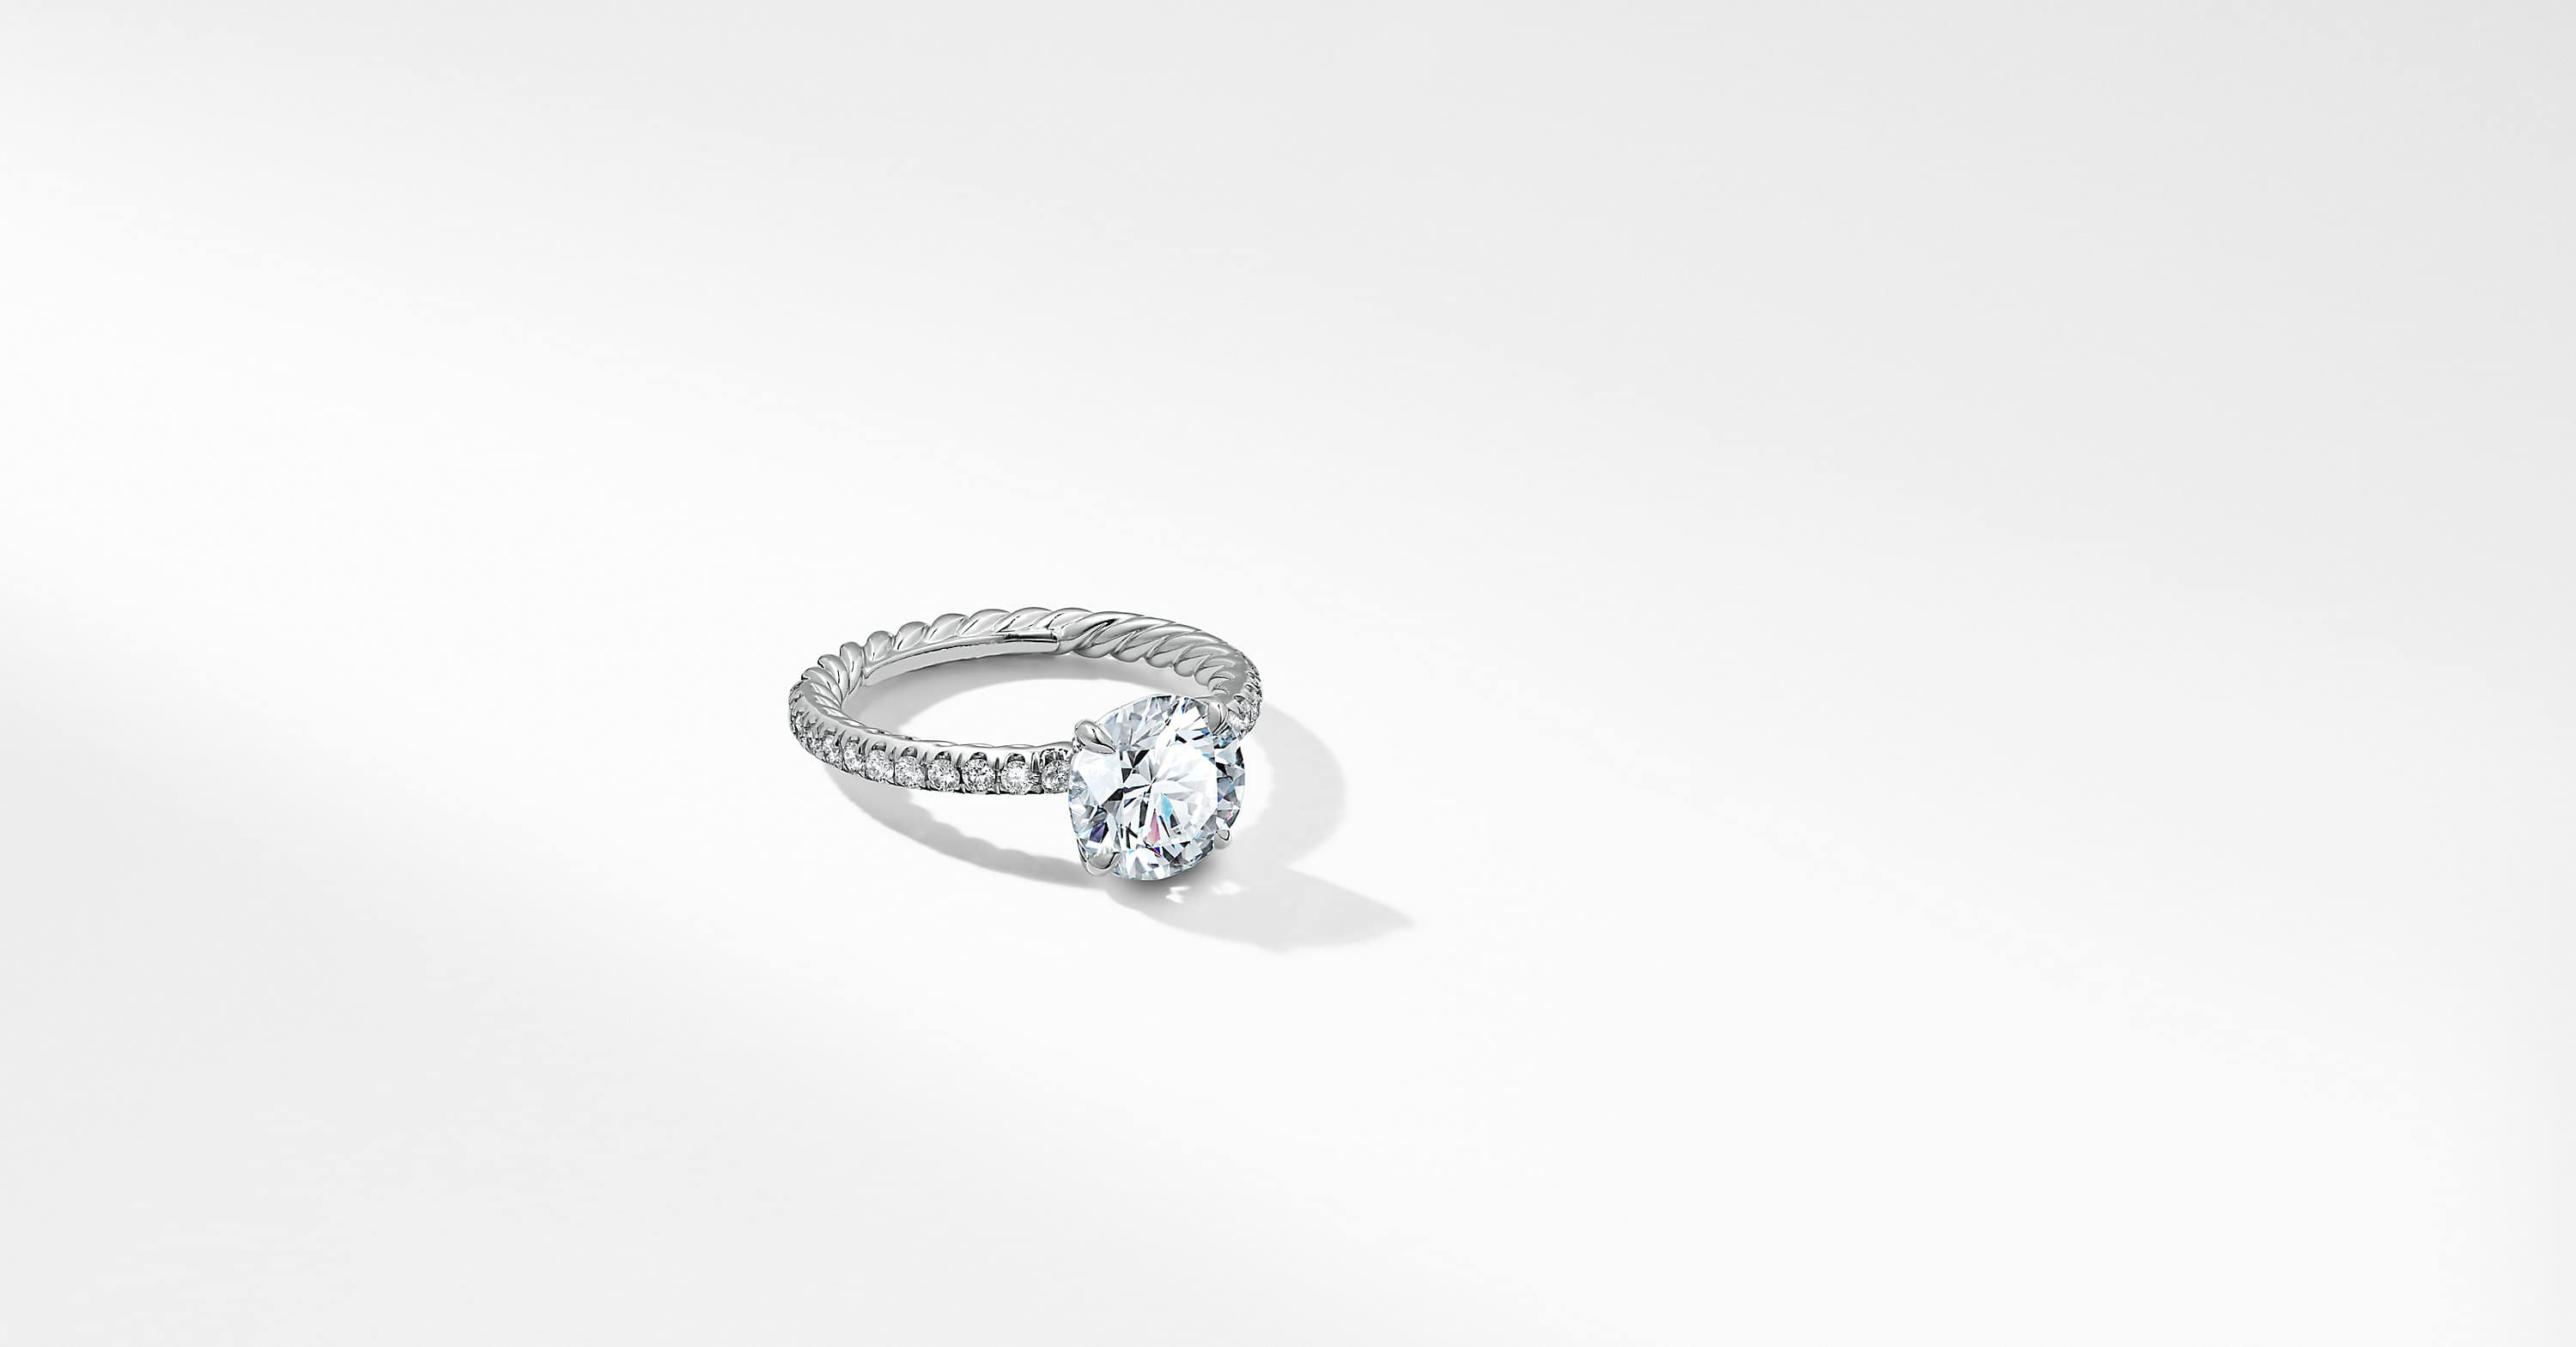 DY Eden Pave Engagement Ring in Platinum, Round